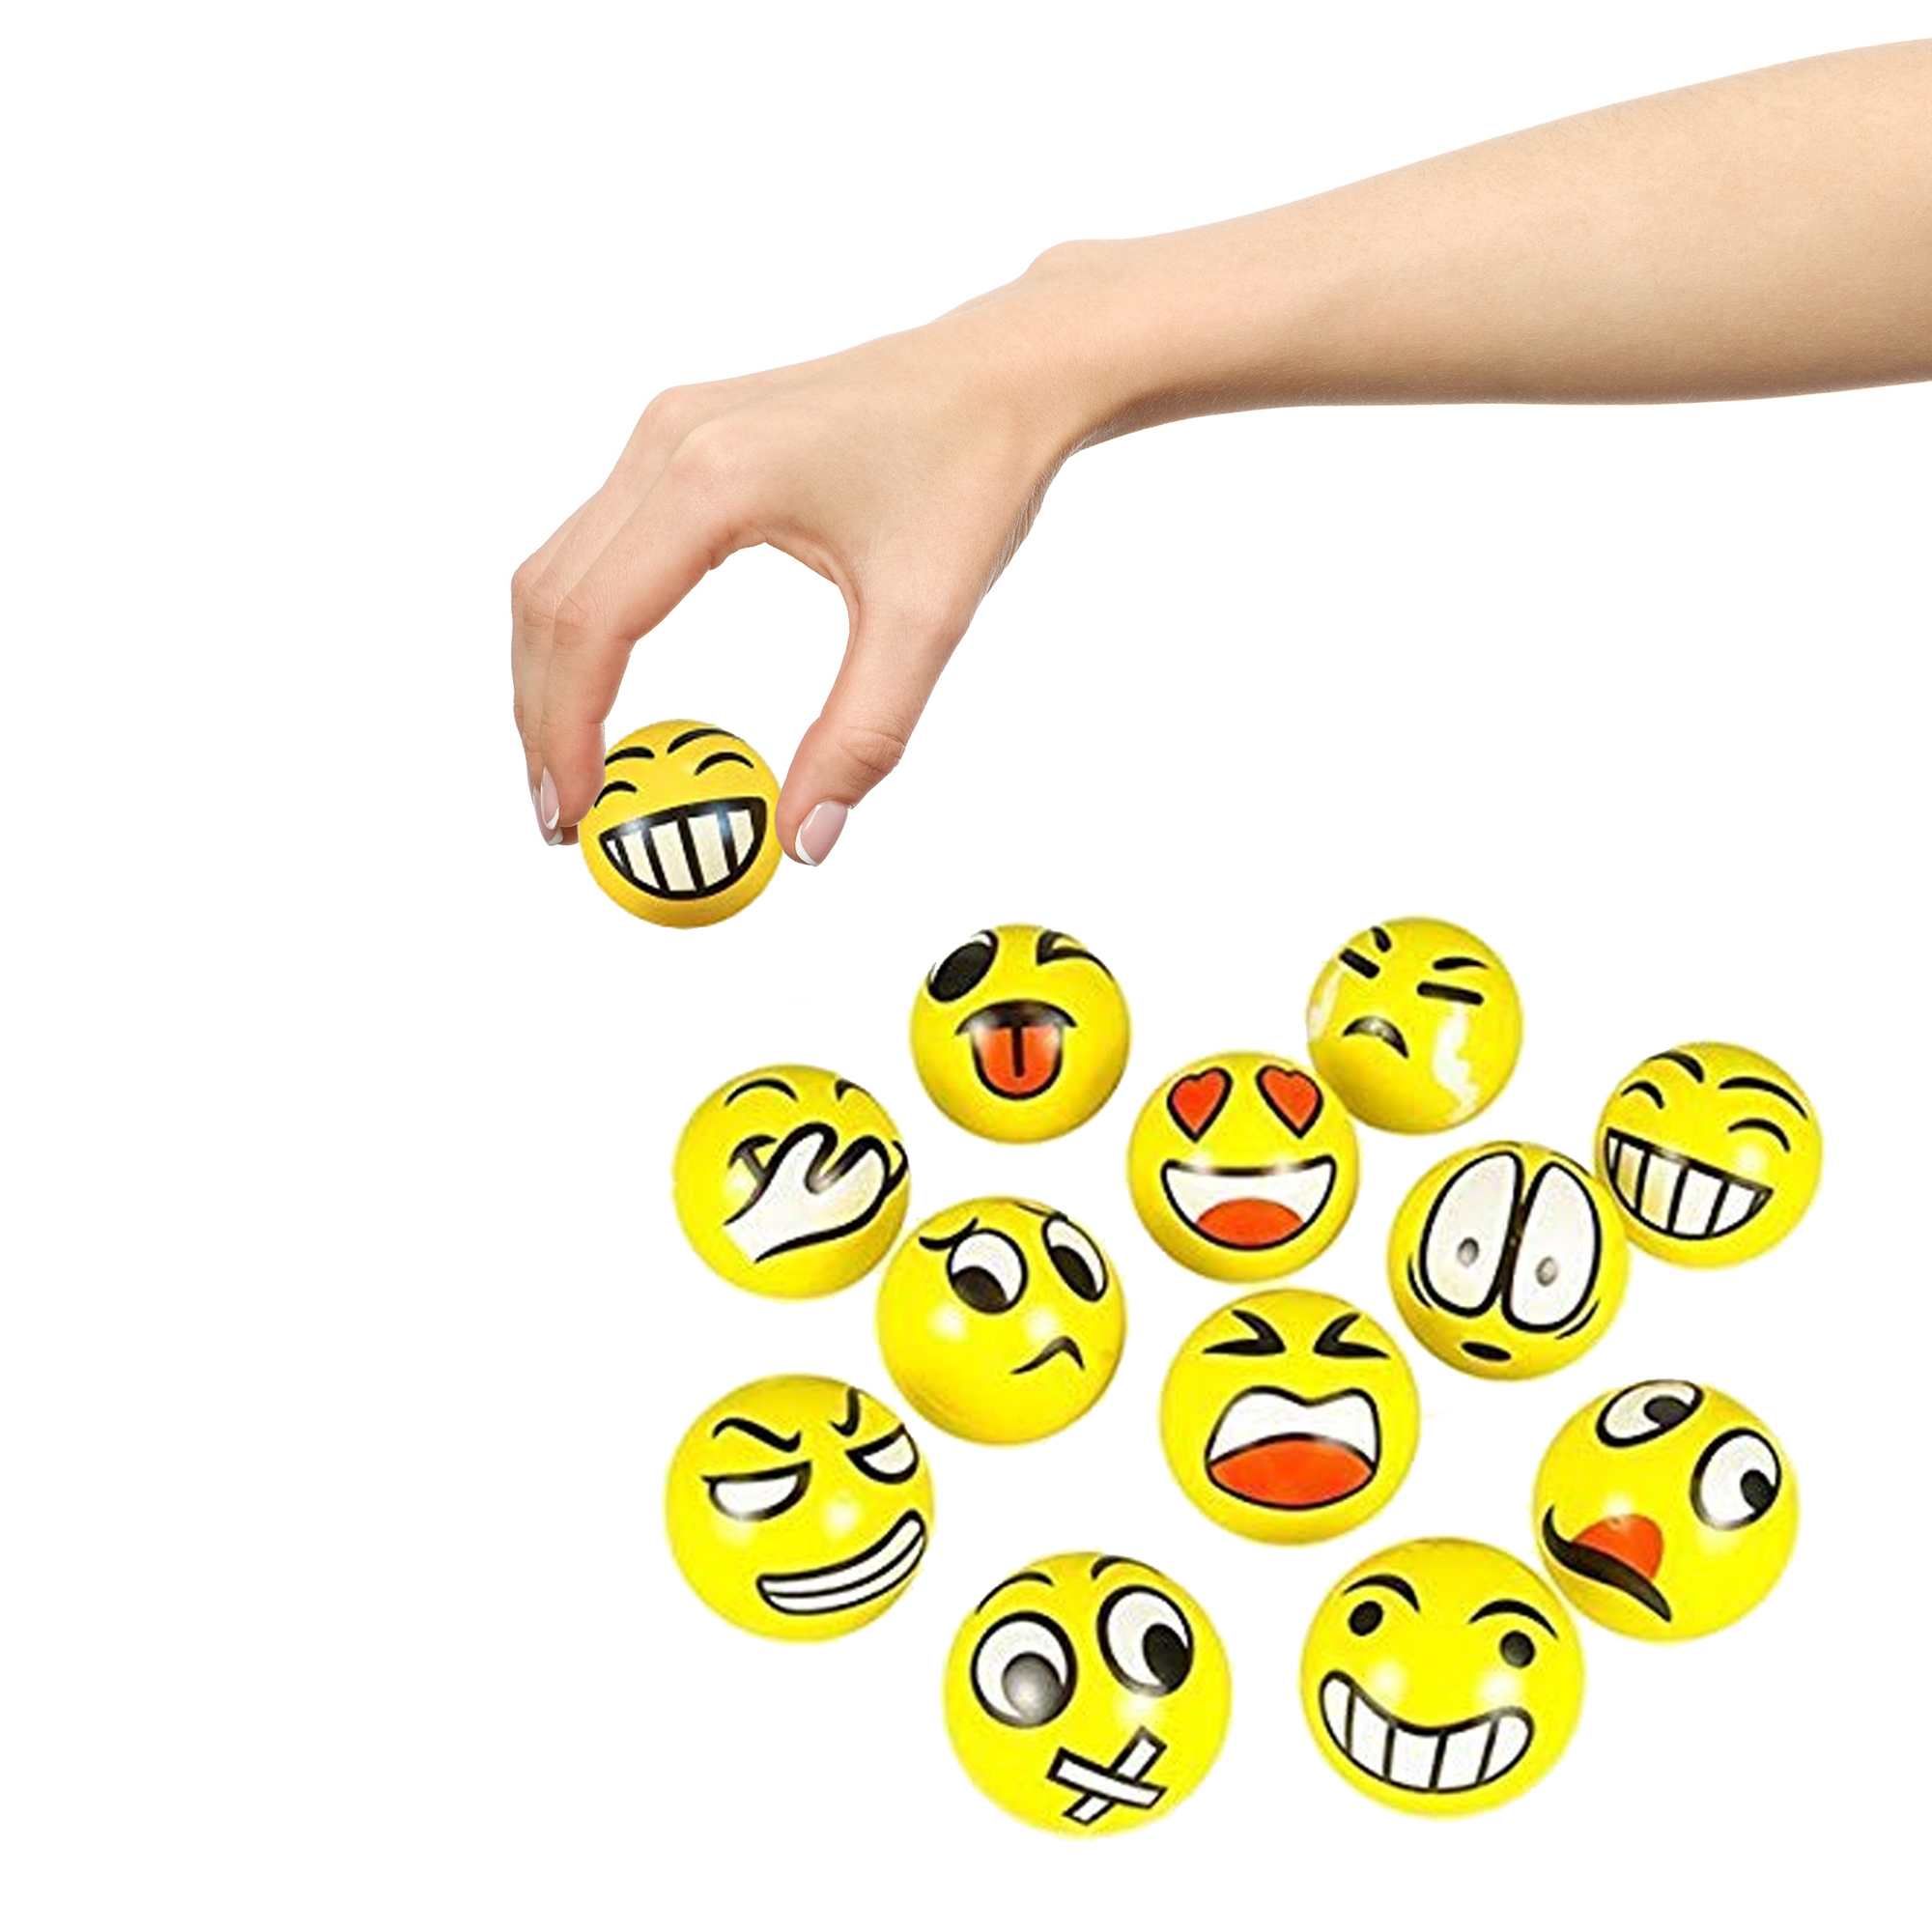 3 Inch Emoji Stress Balls Assorted - 12ct